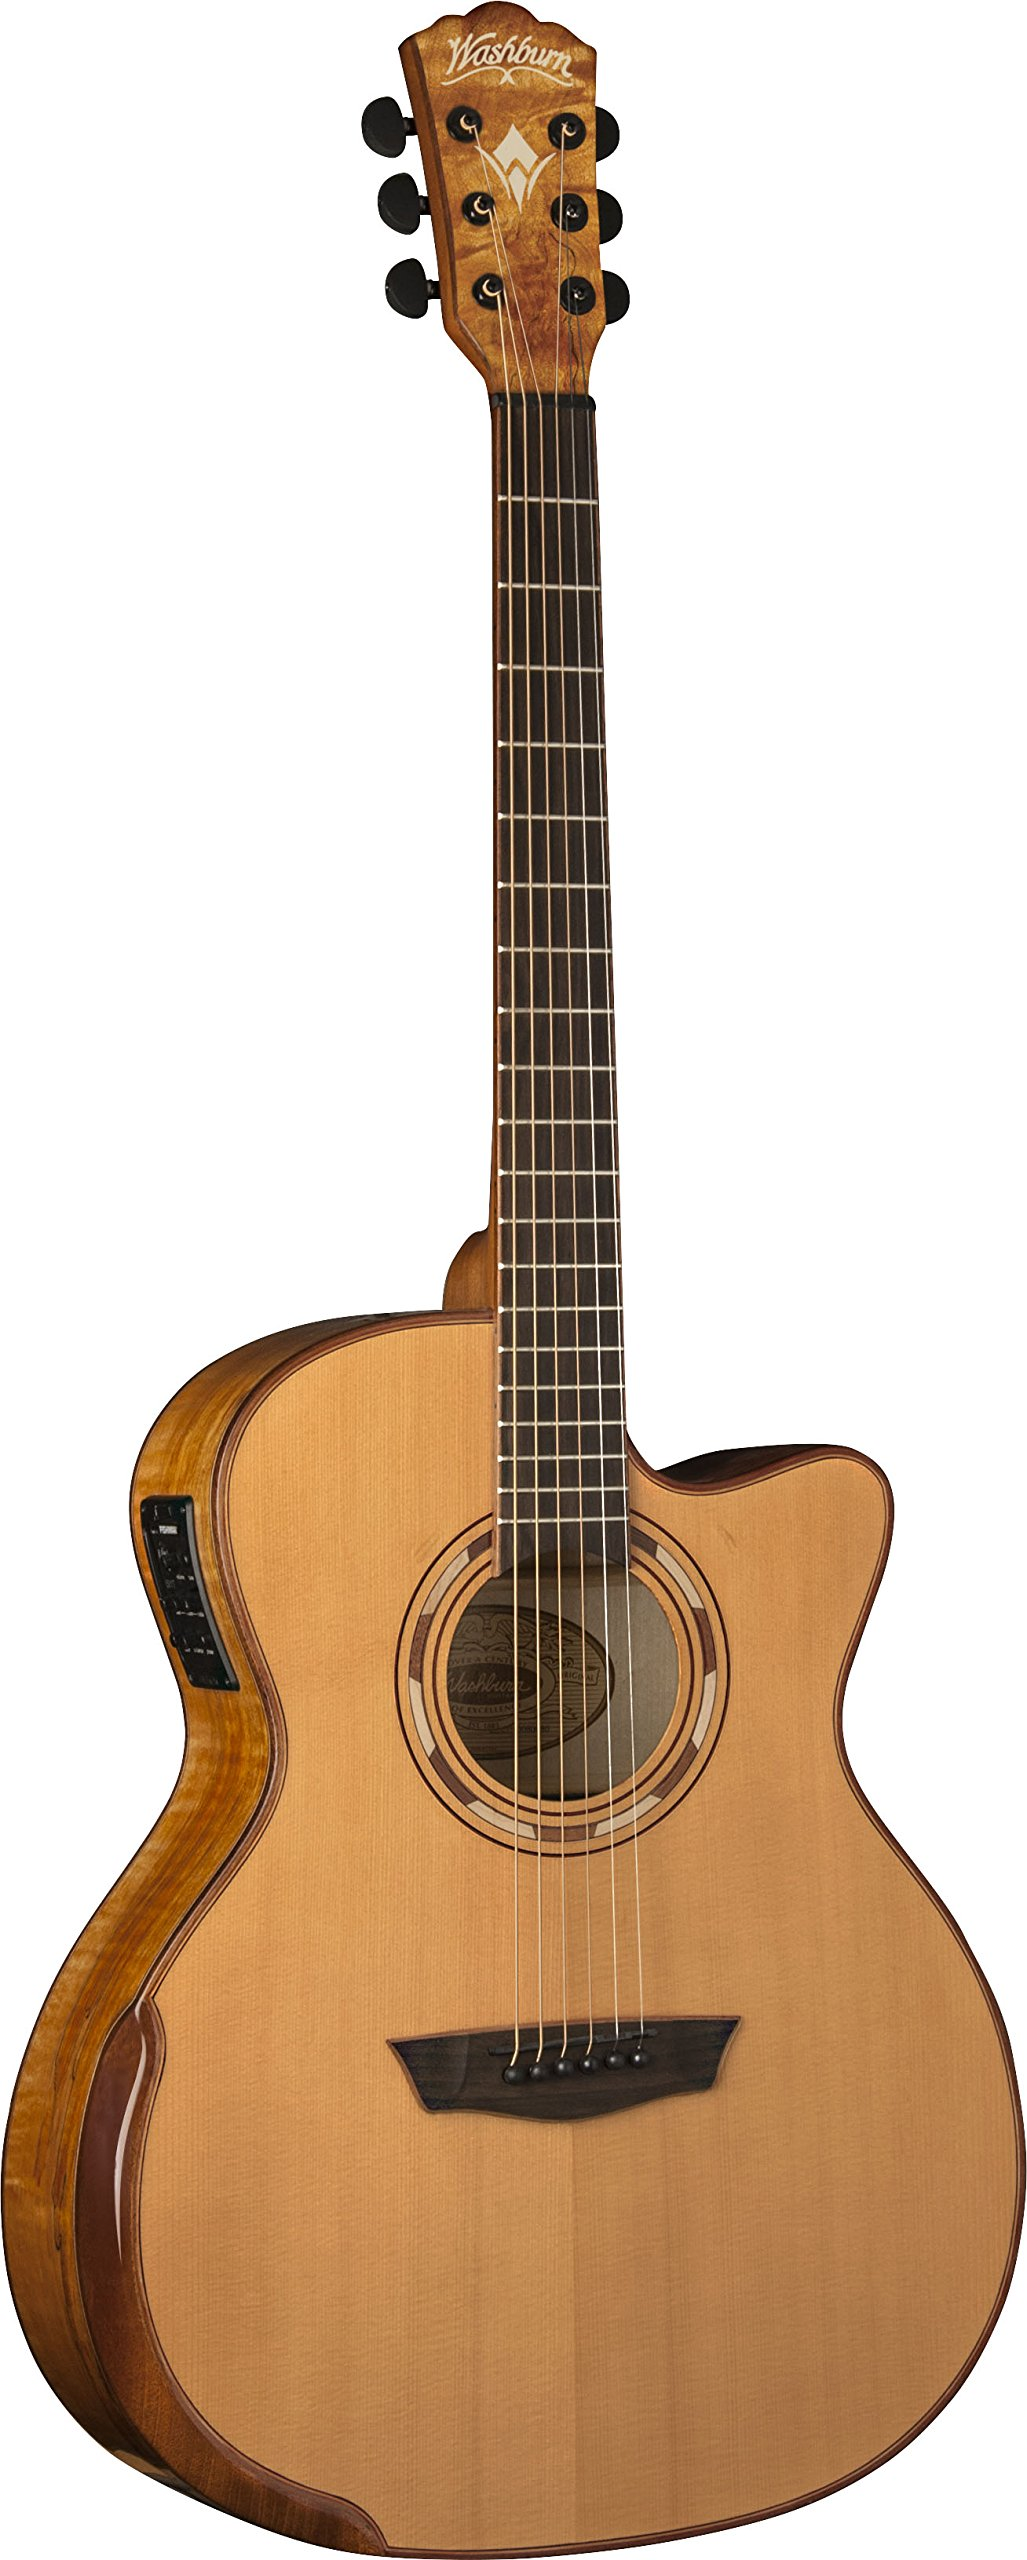 Washburn WCG66SCE Comfort Deluxe Series Acoustic-Electric Guitar, Natural Finish by Washburn